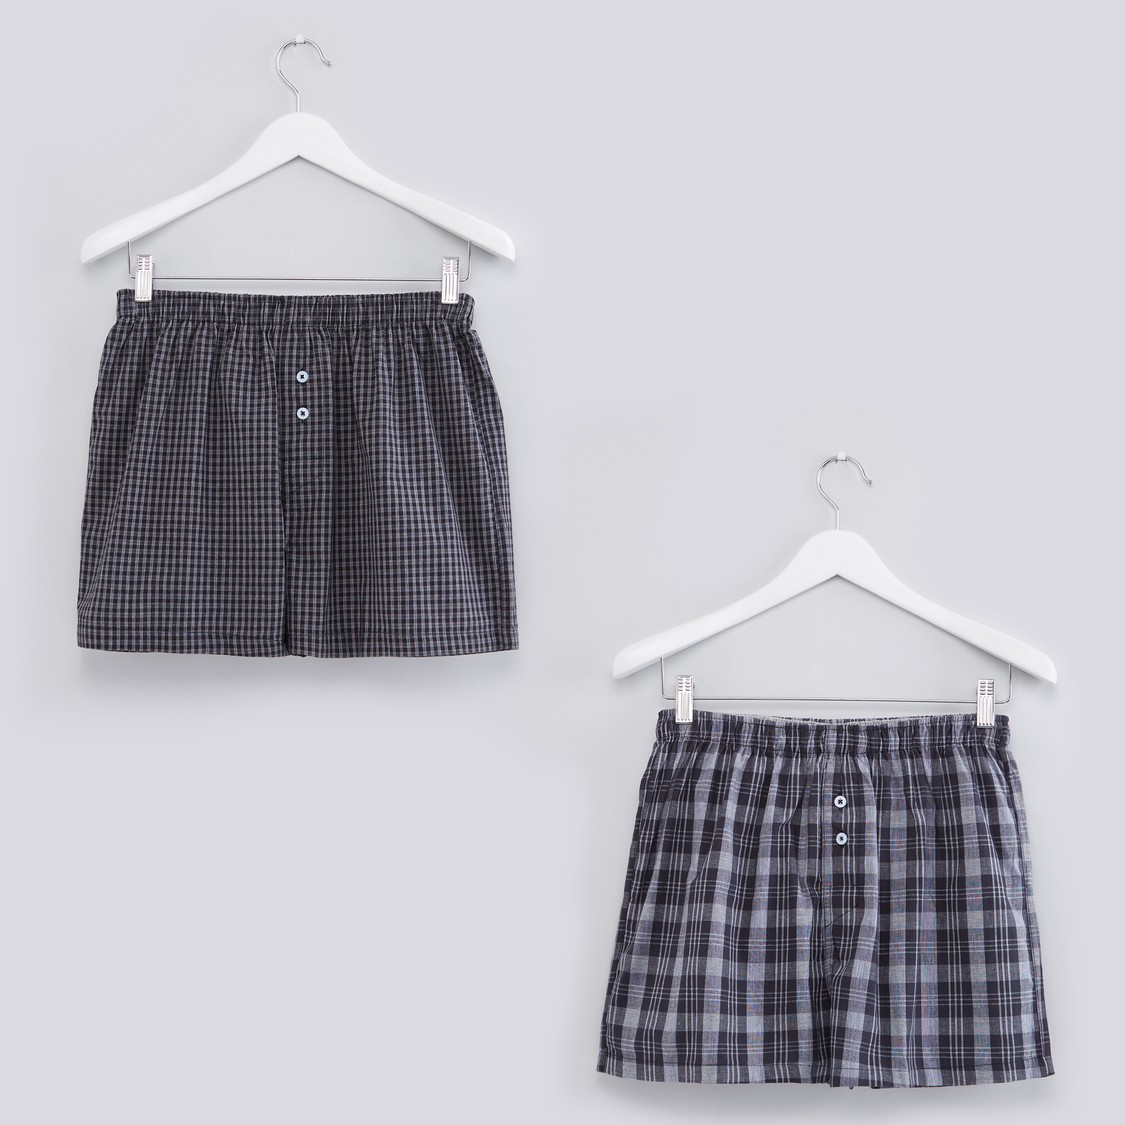 Chequered Boxers with Elasticised Waistband - Set of 2